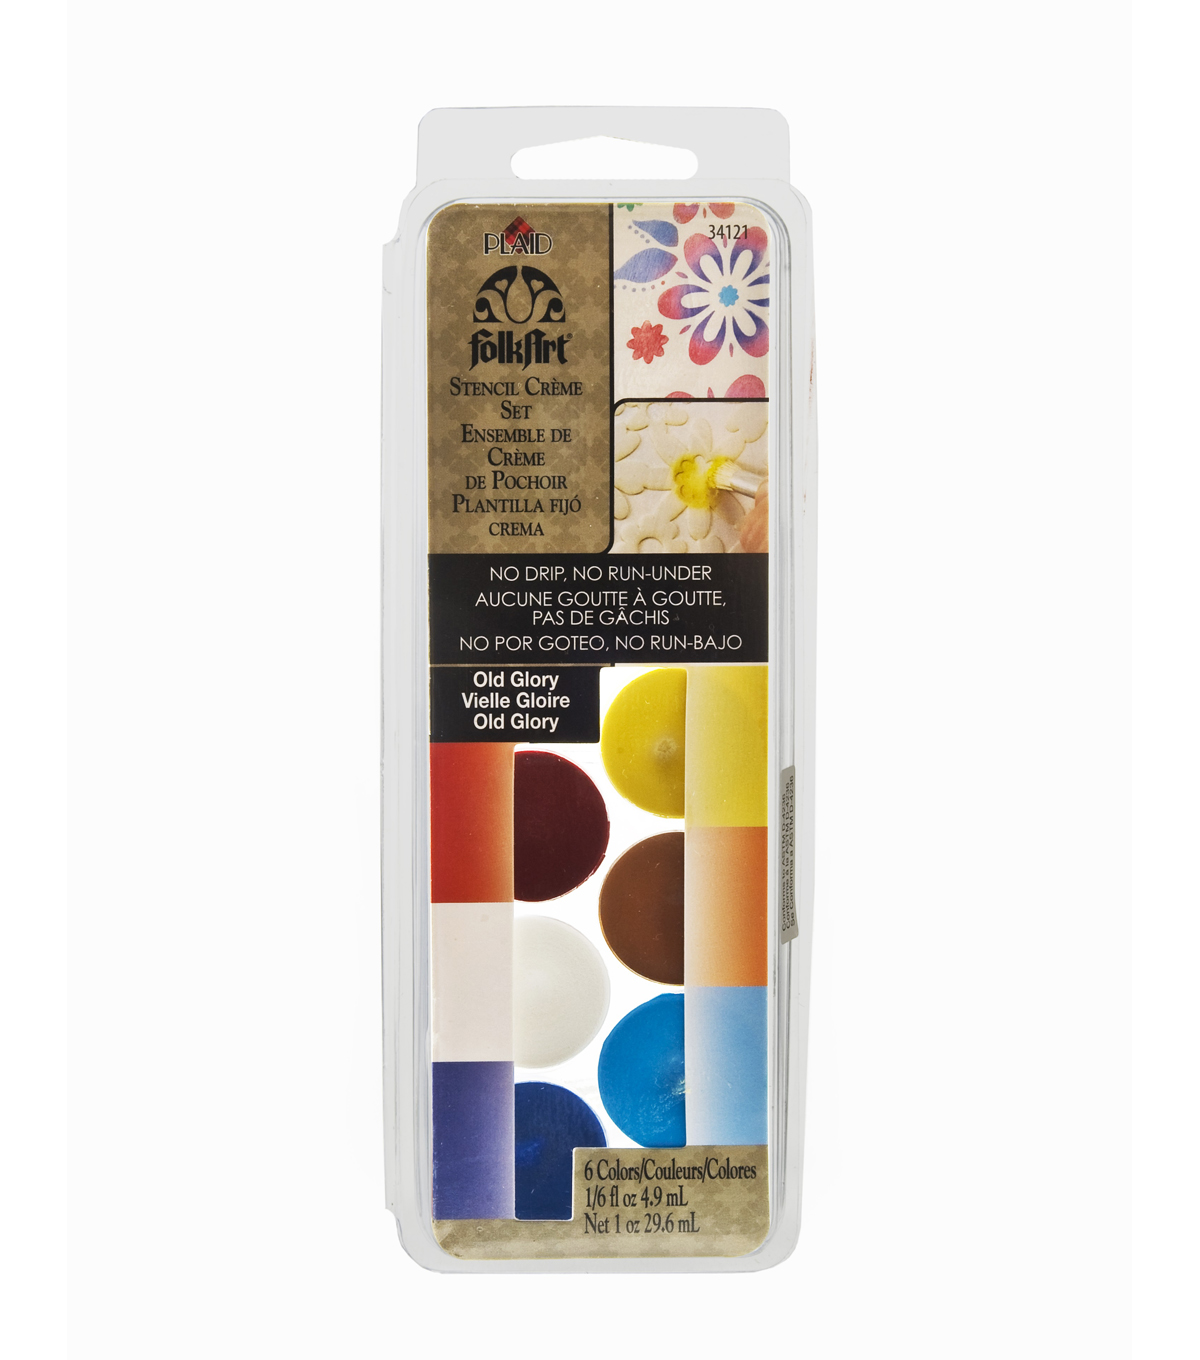 FolkArt Dry Brush Stencil Creme Set-Old Glory